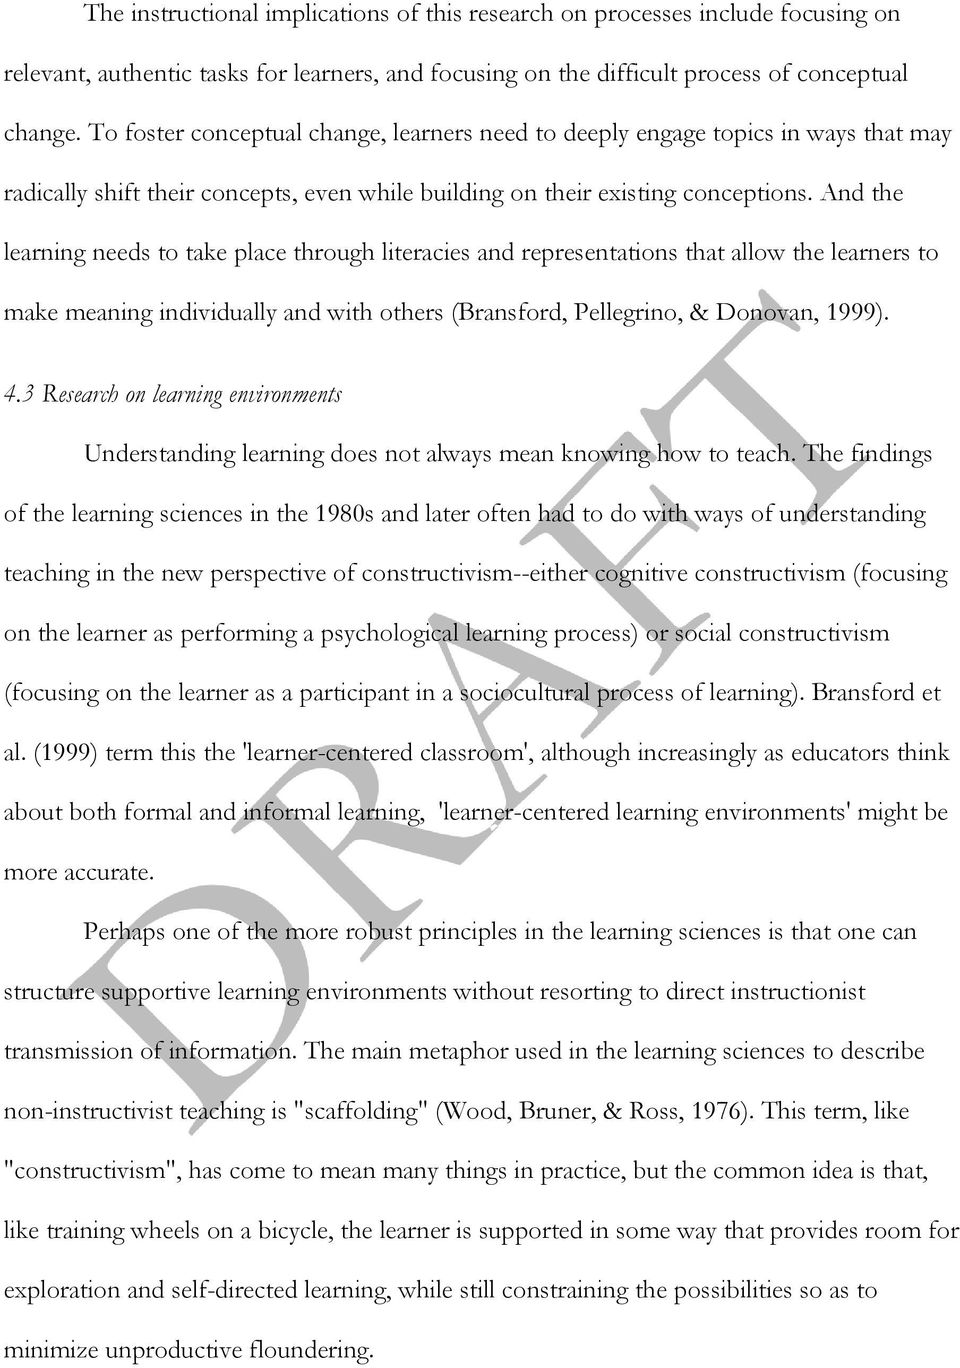 And the learning needs to take place through literacies and representations that allow the learners to make meaning individually and with others (Bransford, Pellegrino, & Donovan, 1999). 4.